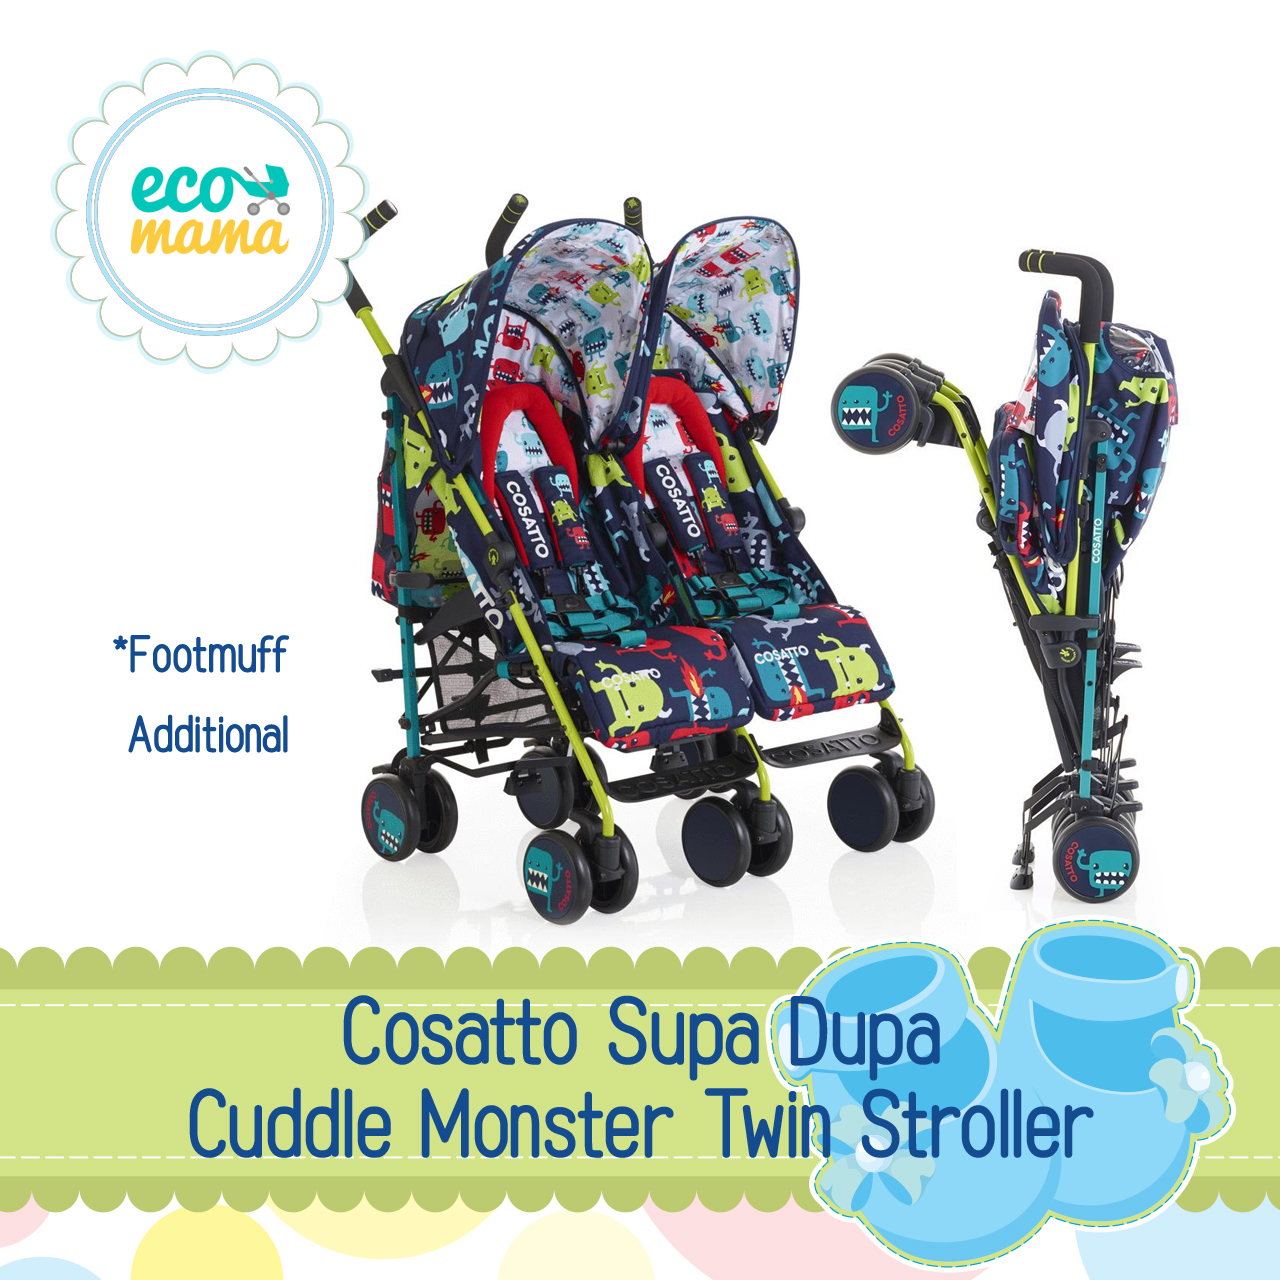 Cosatto Supa Dupa Cuddle Monster Twin